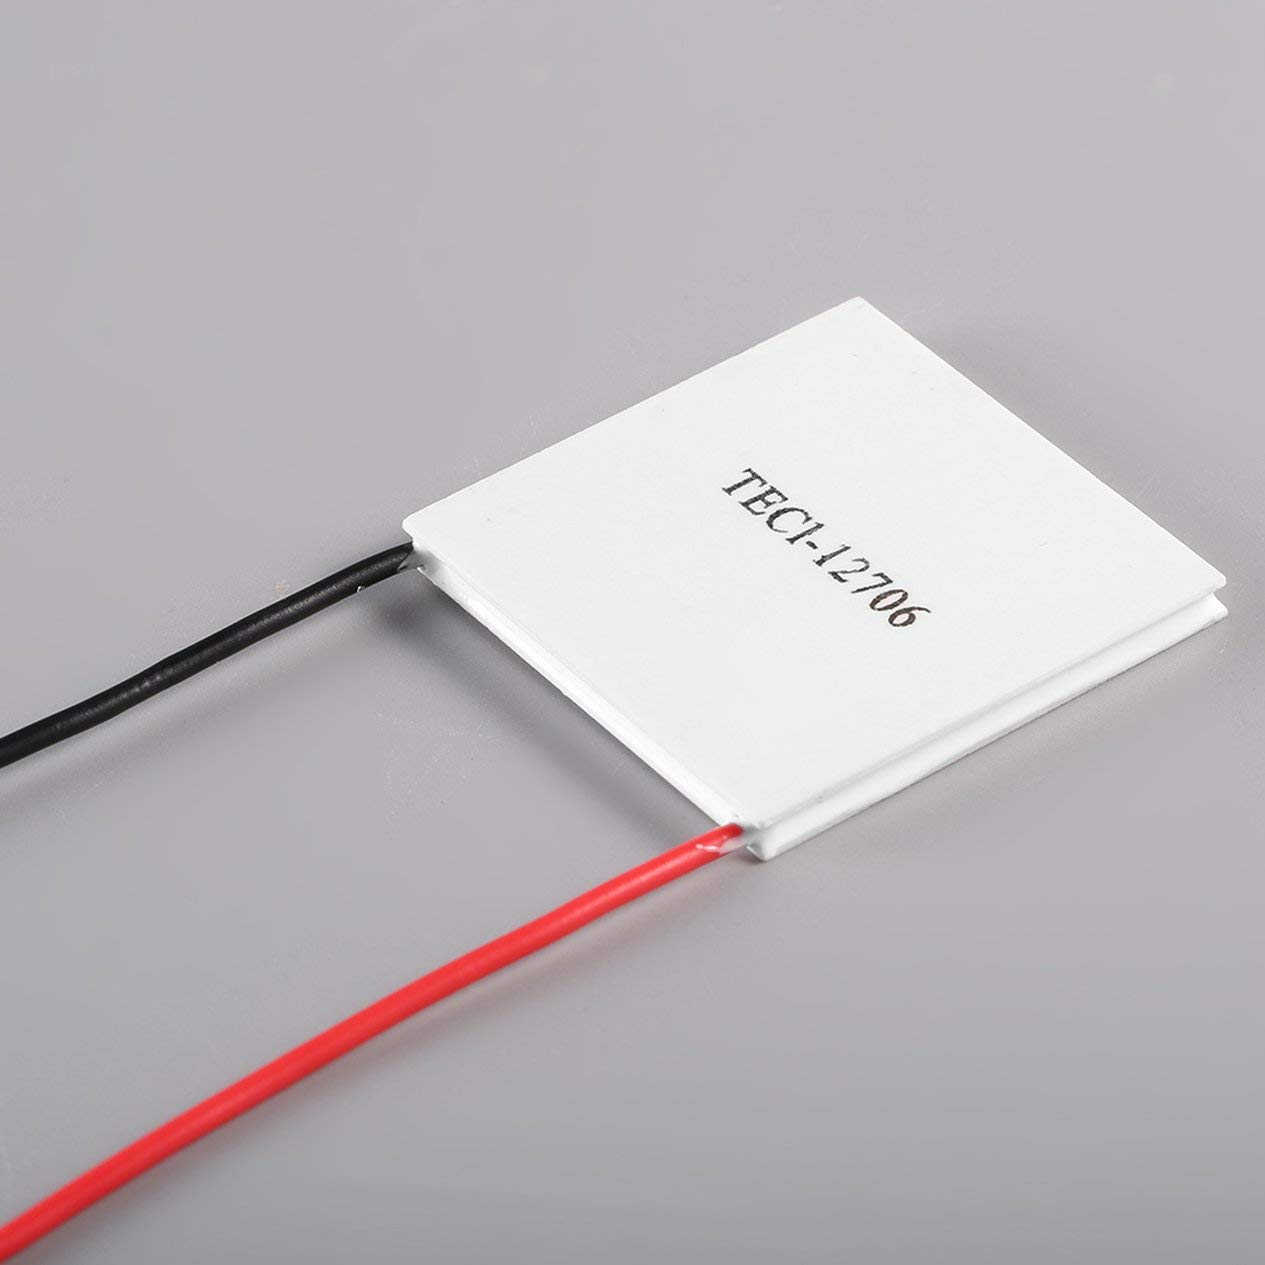 12 V 60 W TEC1-12706 Temperature Power Generation Heatsink Cooler Thermoelectric Peltier Plate Panel Cooling CPU Module